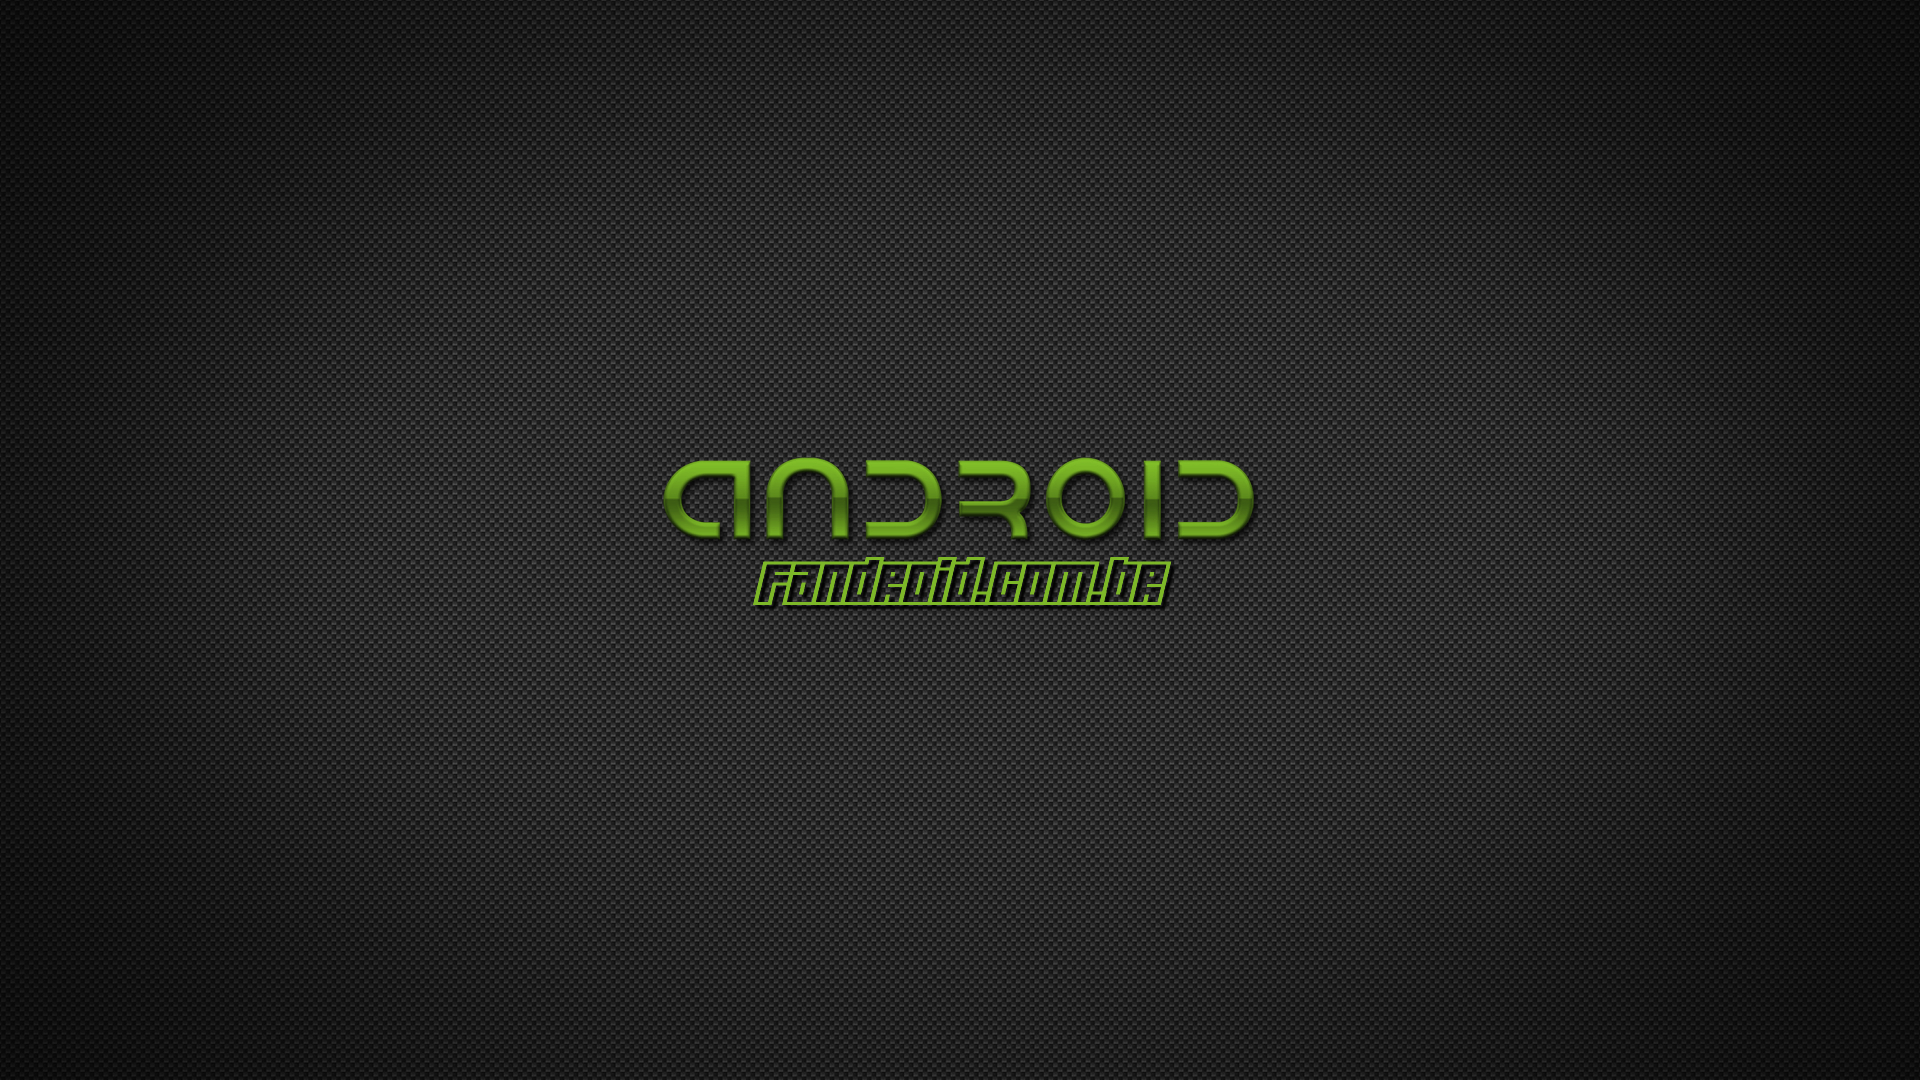 Carbon Android Jpg Oficial Fandroid Autor Sergio 1381664 Wallpaper wallpaper